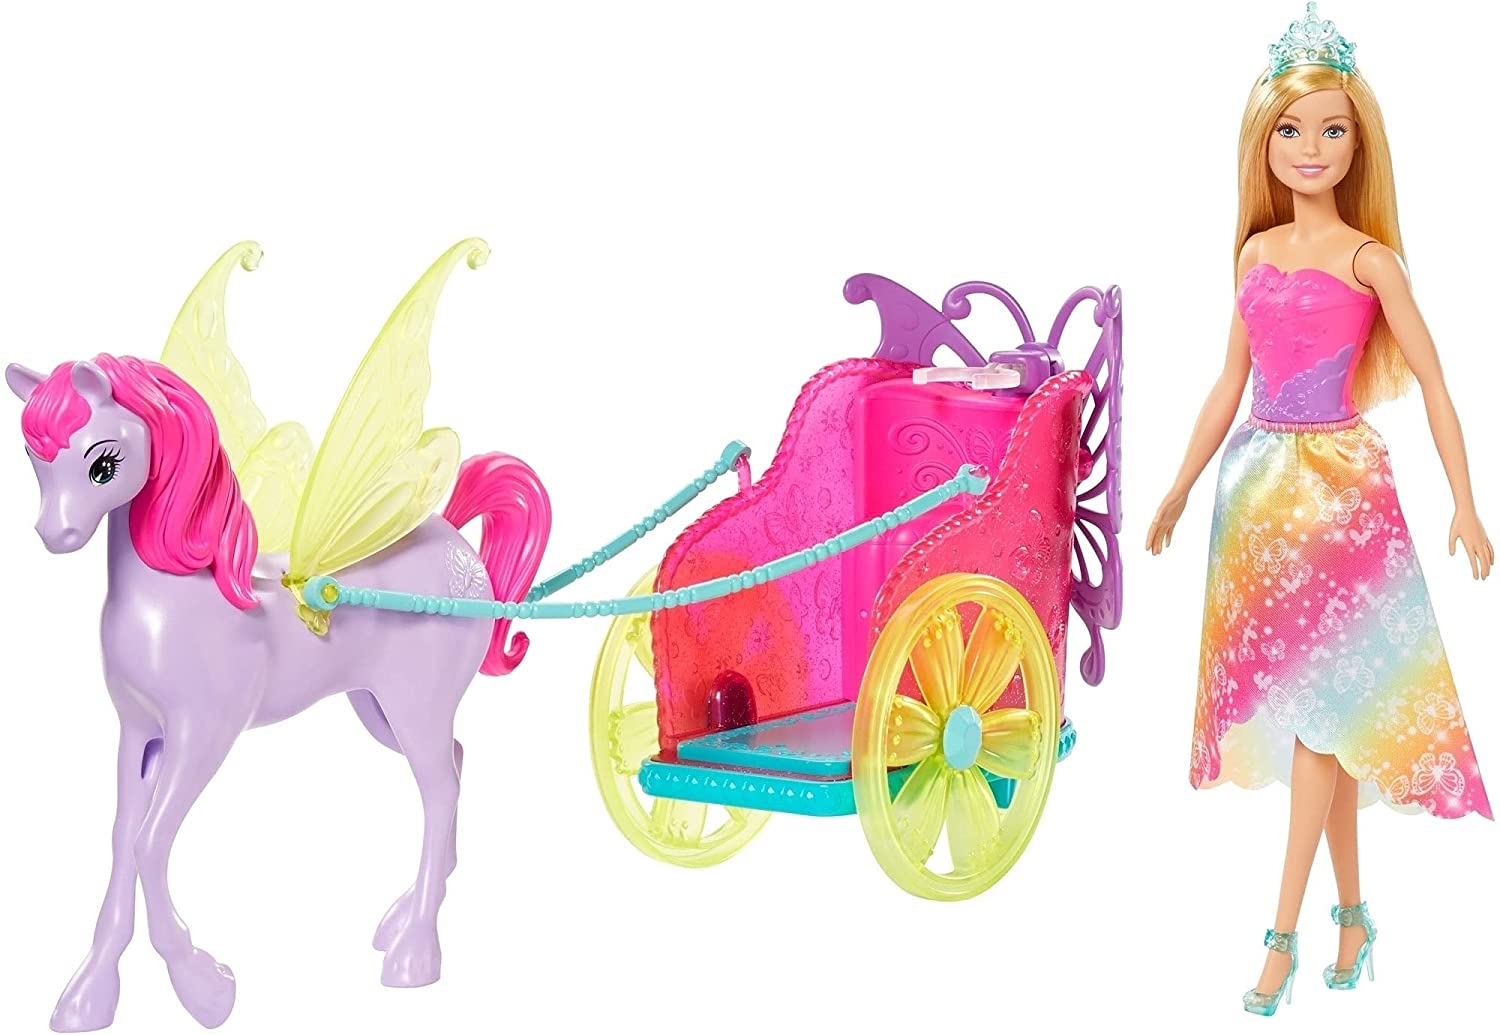 Barbie Max 53% OFF Dreamtopia Princess Doll 11.5-in Ho Blonde Fantasy Selling rankings with